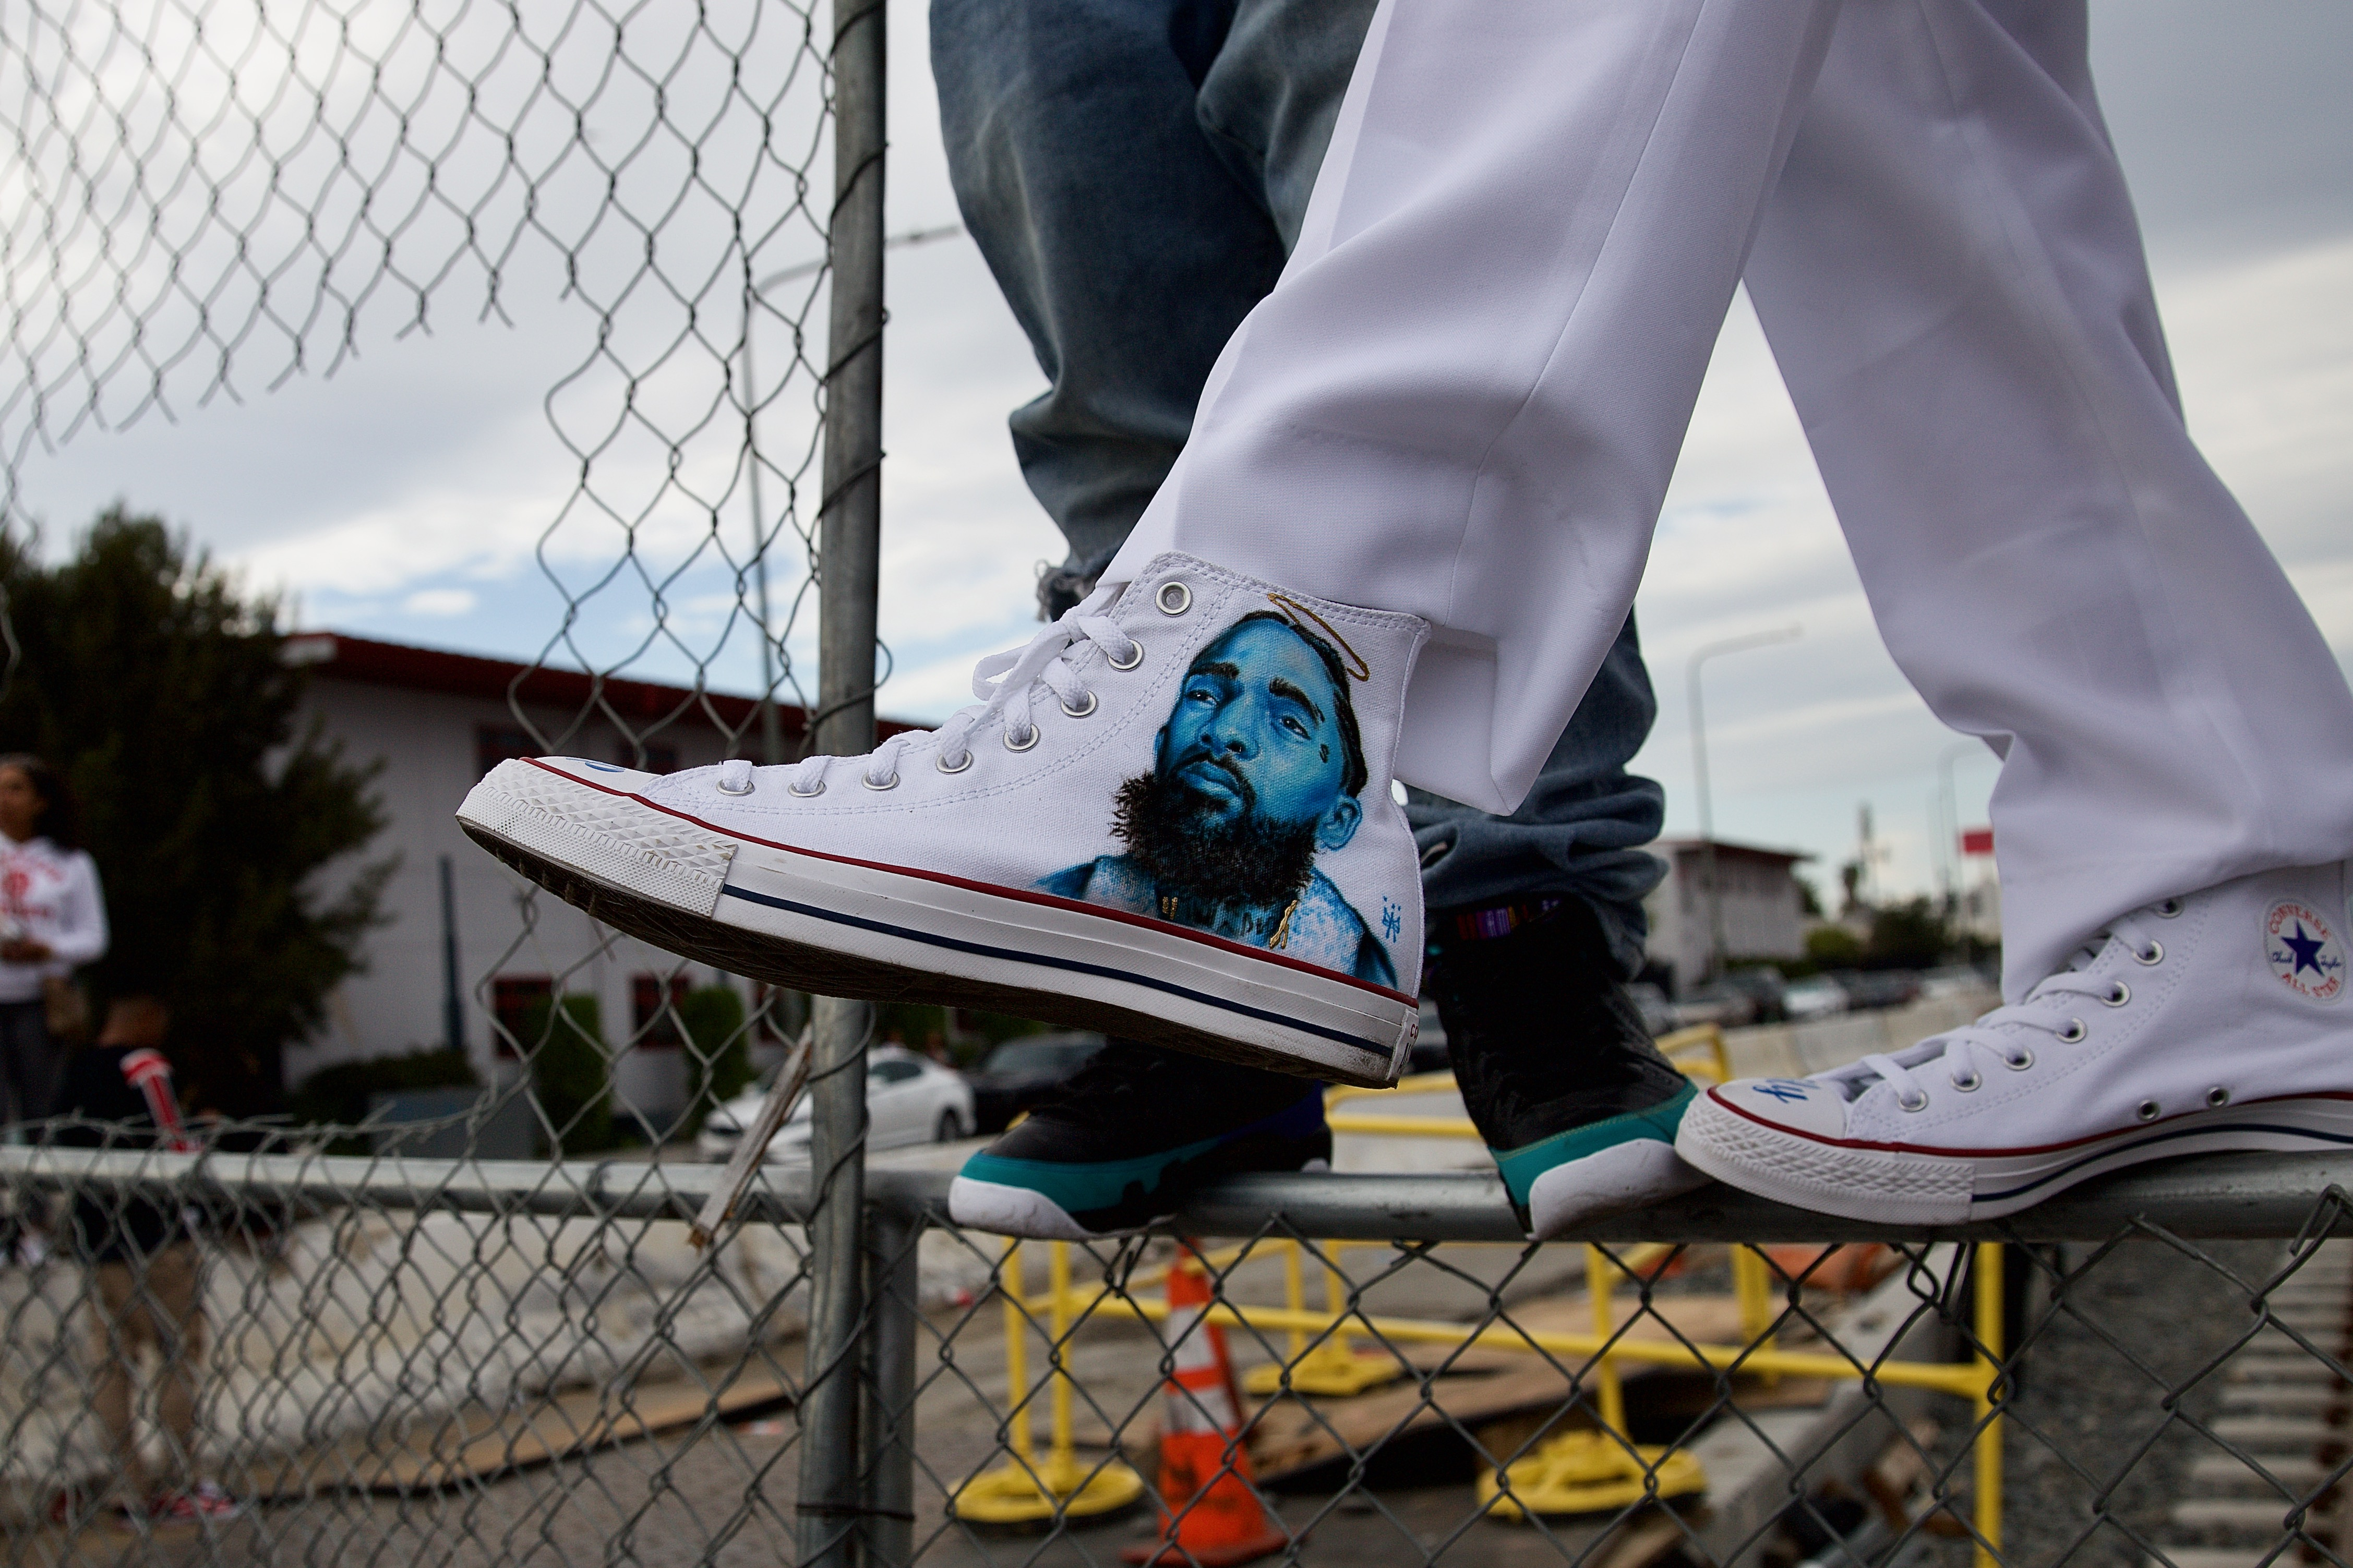 Jermaine Welch shows off the shoe he had custom painted in Nipsey Hussle's honor while waiting for Hussle's funeral procession to pass through the intersection at Crenshaw and Slauson on April 11. Hussle was killed in front of his store, The Marathon, on March 31. Sahra Sulaiman/Streetsblog L.A.